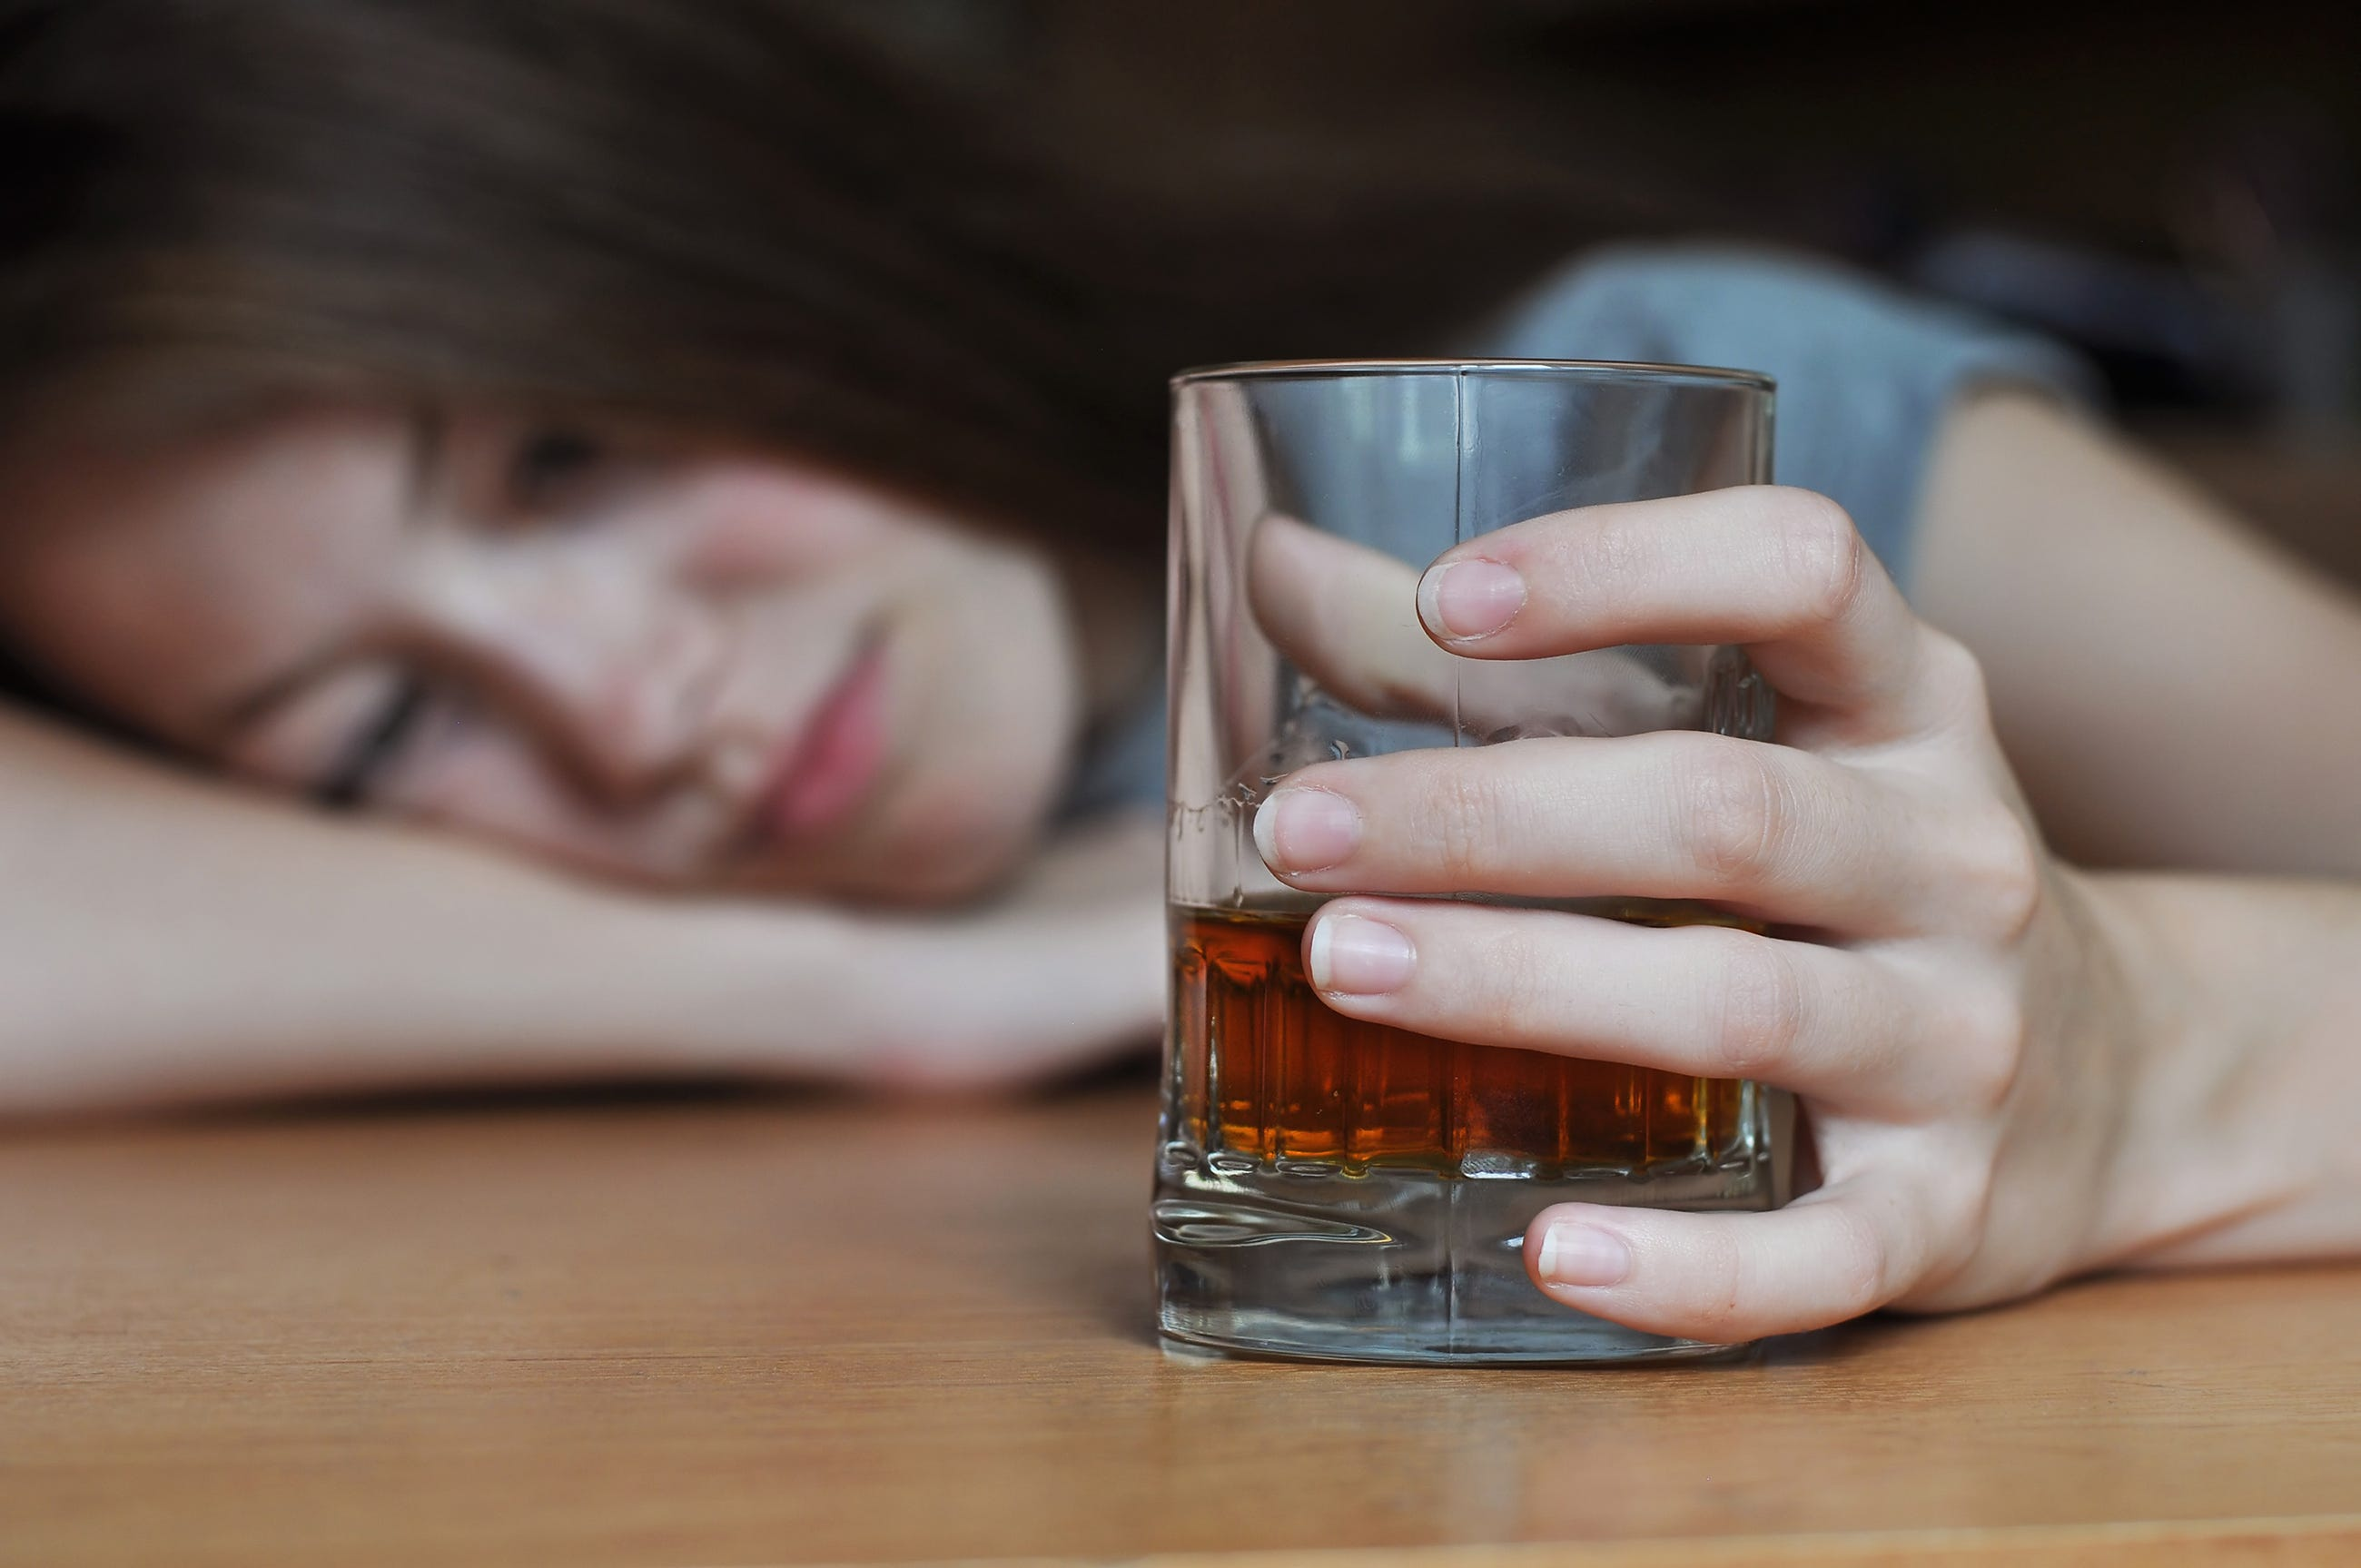 Too Much Alcohol Linked to Unsafe Sex